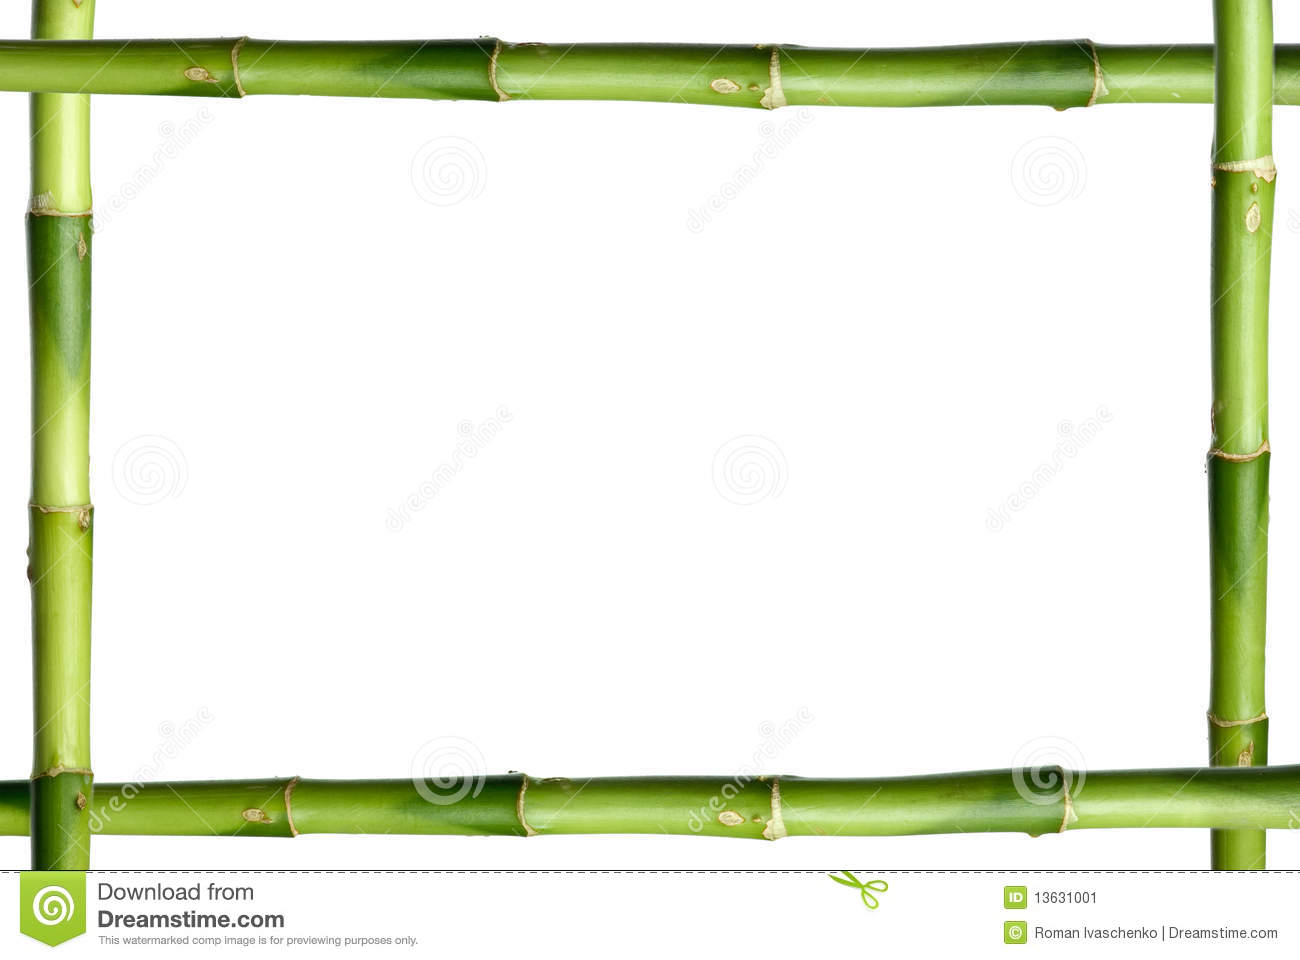 Green bamboo stick frame stock image. Image of plant - 13631001